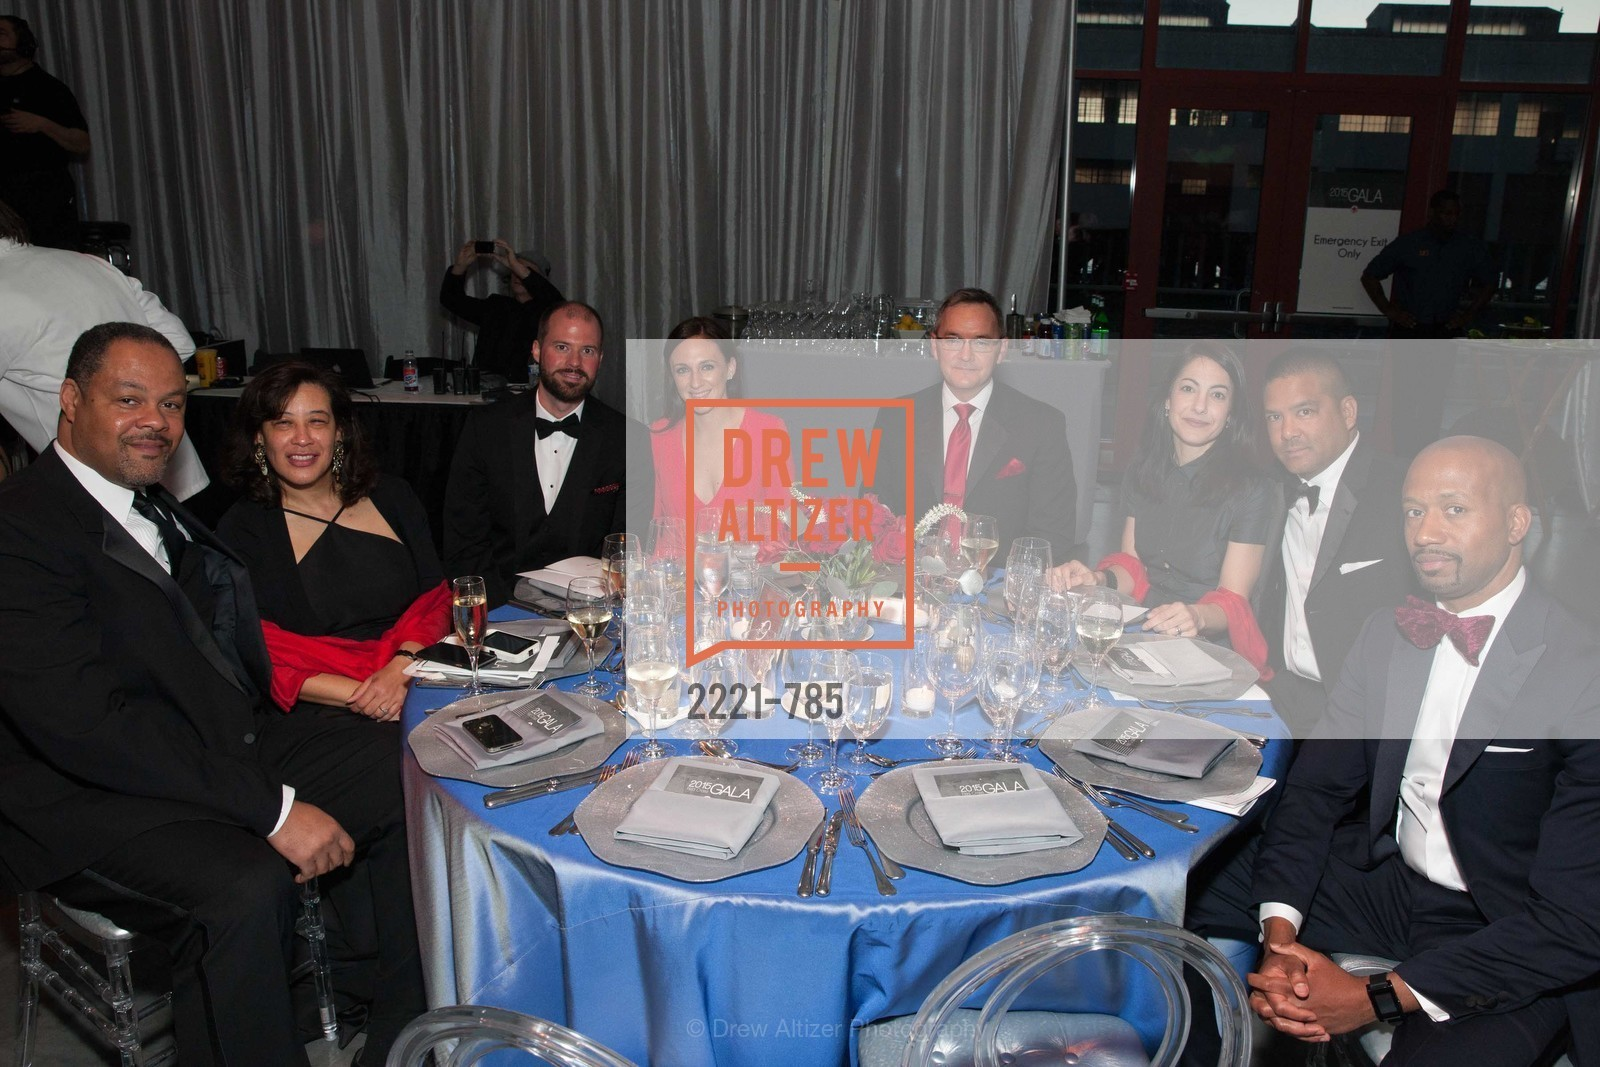 Carl McKenzie, Soo Ling Youngblood, Chris Foster, Joy Foster, Rob Black, Stephanie Anderson, OJ Leonardo, Jimi Harris, 2015 RED CROSS Gala, US, April 11th, 2015,Drew Altizer, Drew Altizer Photography, full-service agency, private events, San Francisco photographer, photographer california